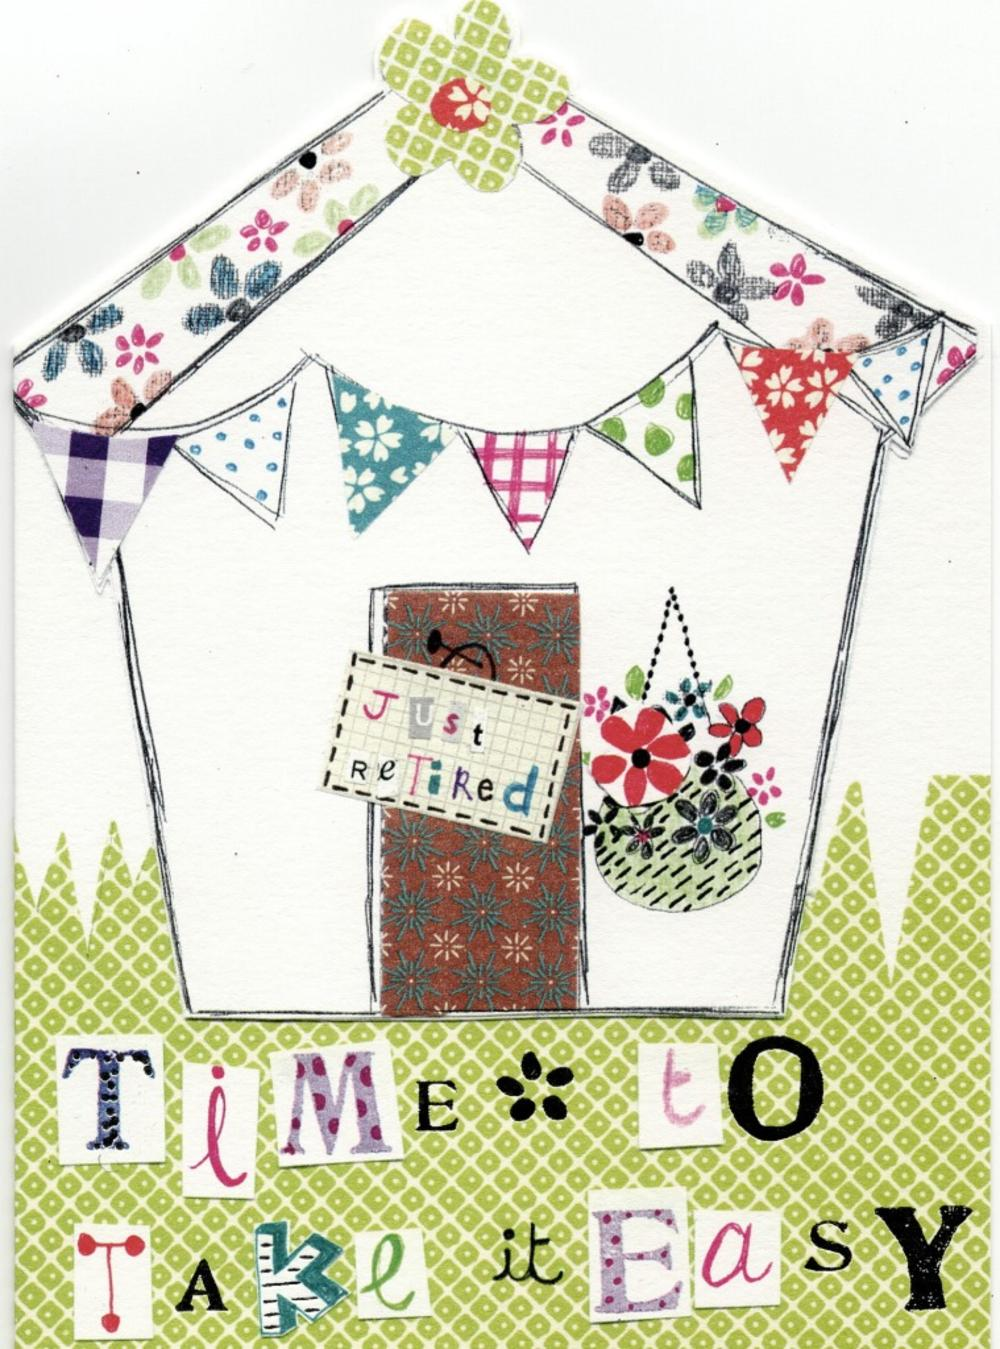 Time To Take It Easy Paper Salad Greeting Card